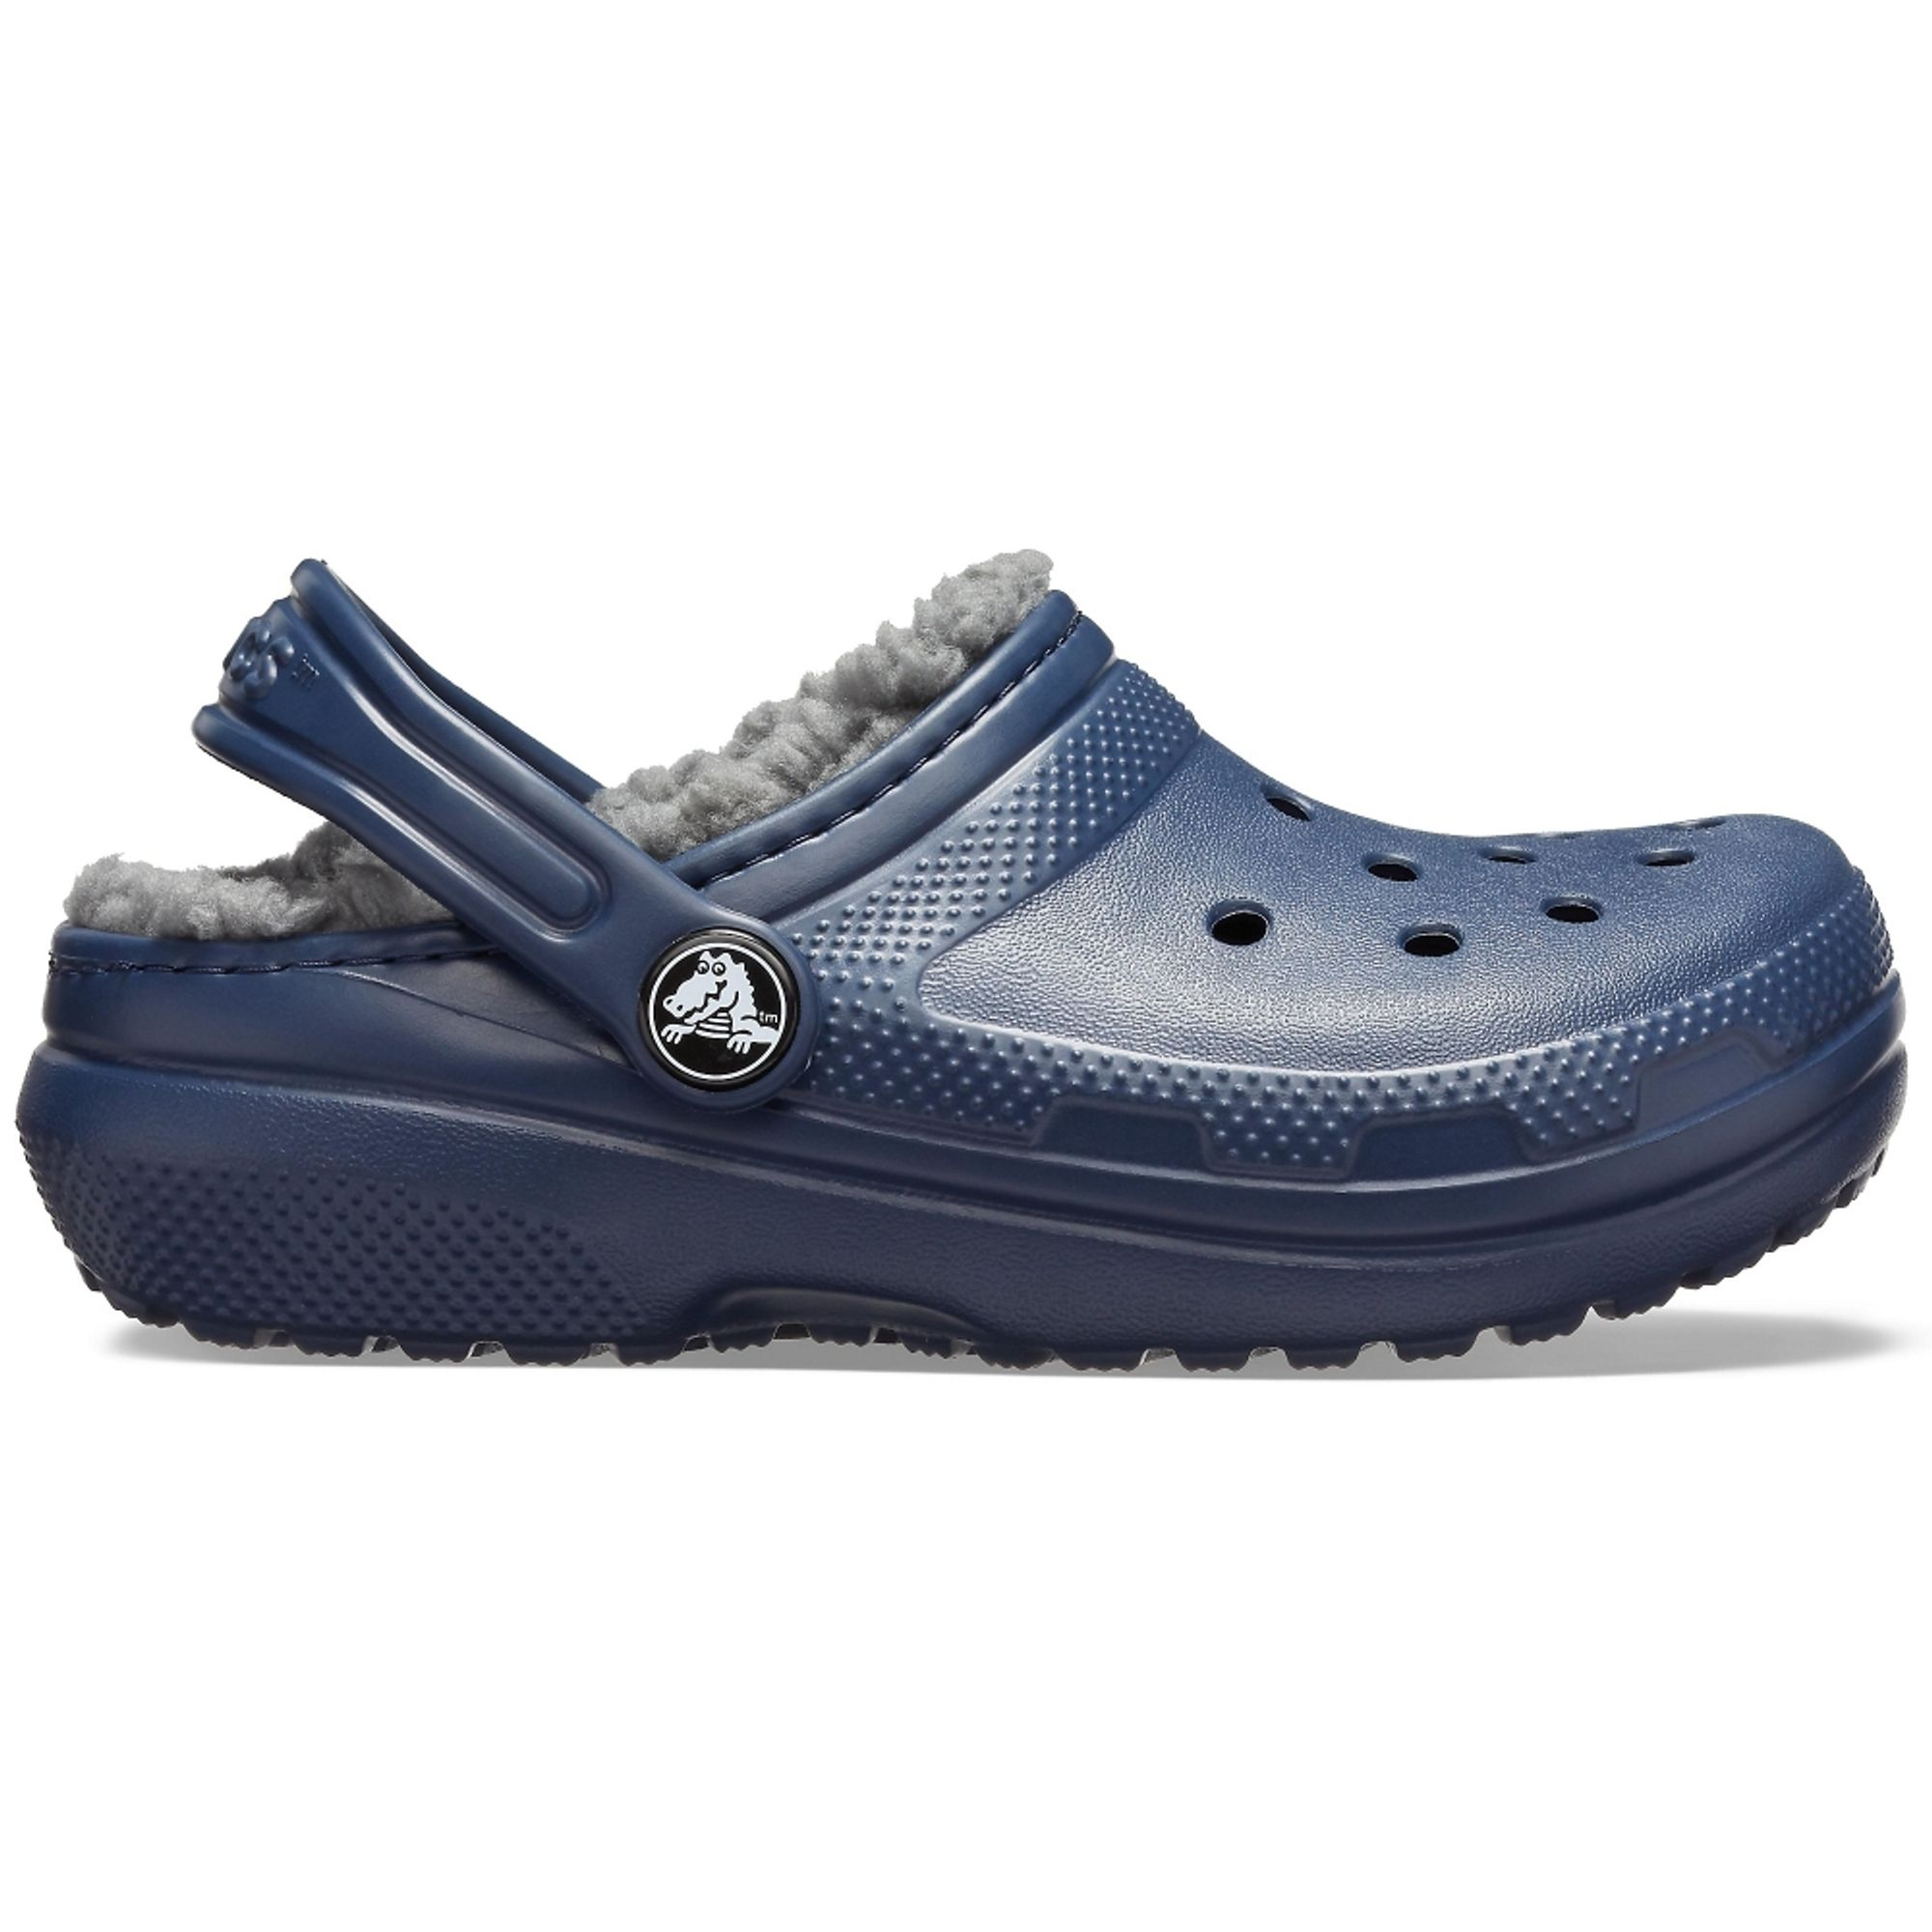 Kids'-Classic-Lined-Clog-color-Navy---Charcoal-talla-J2